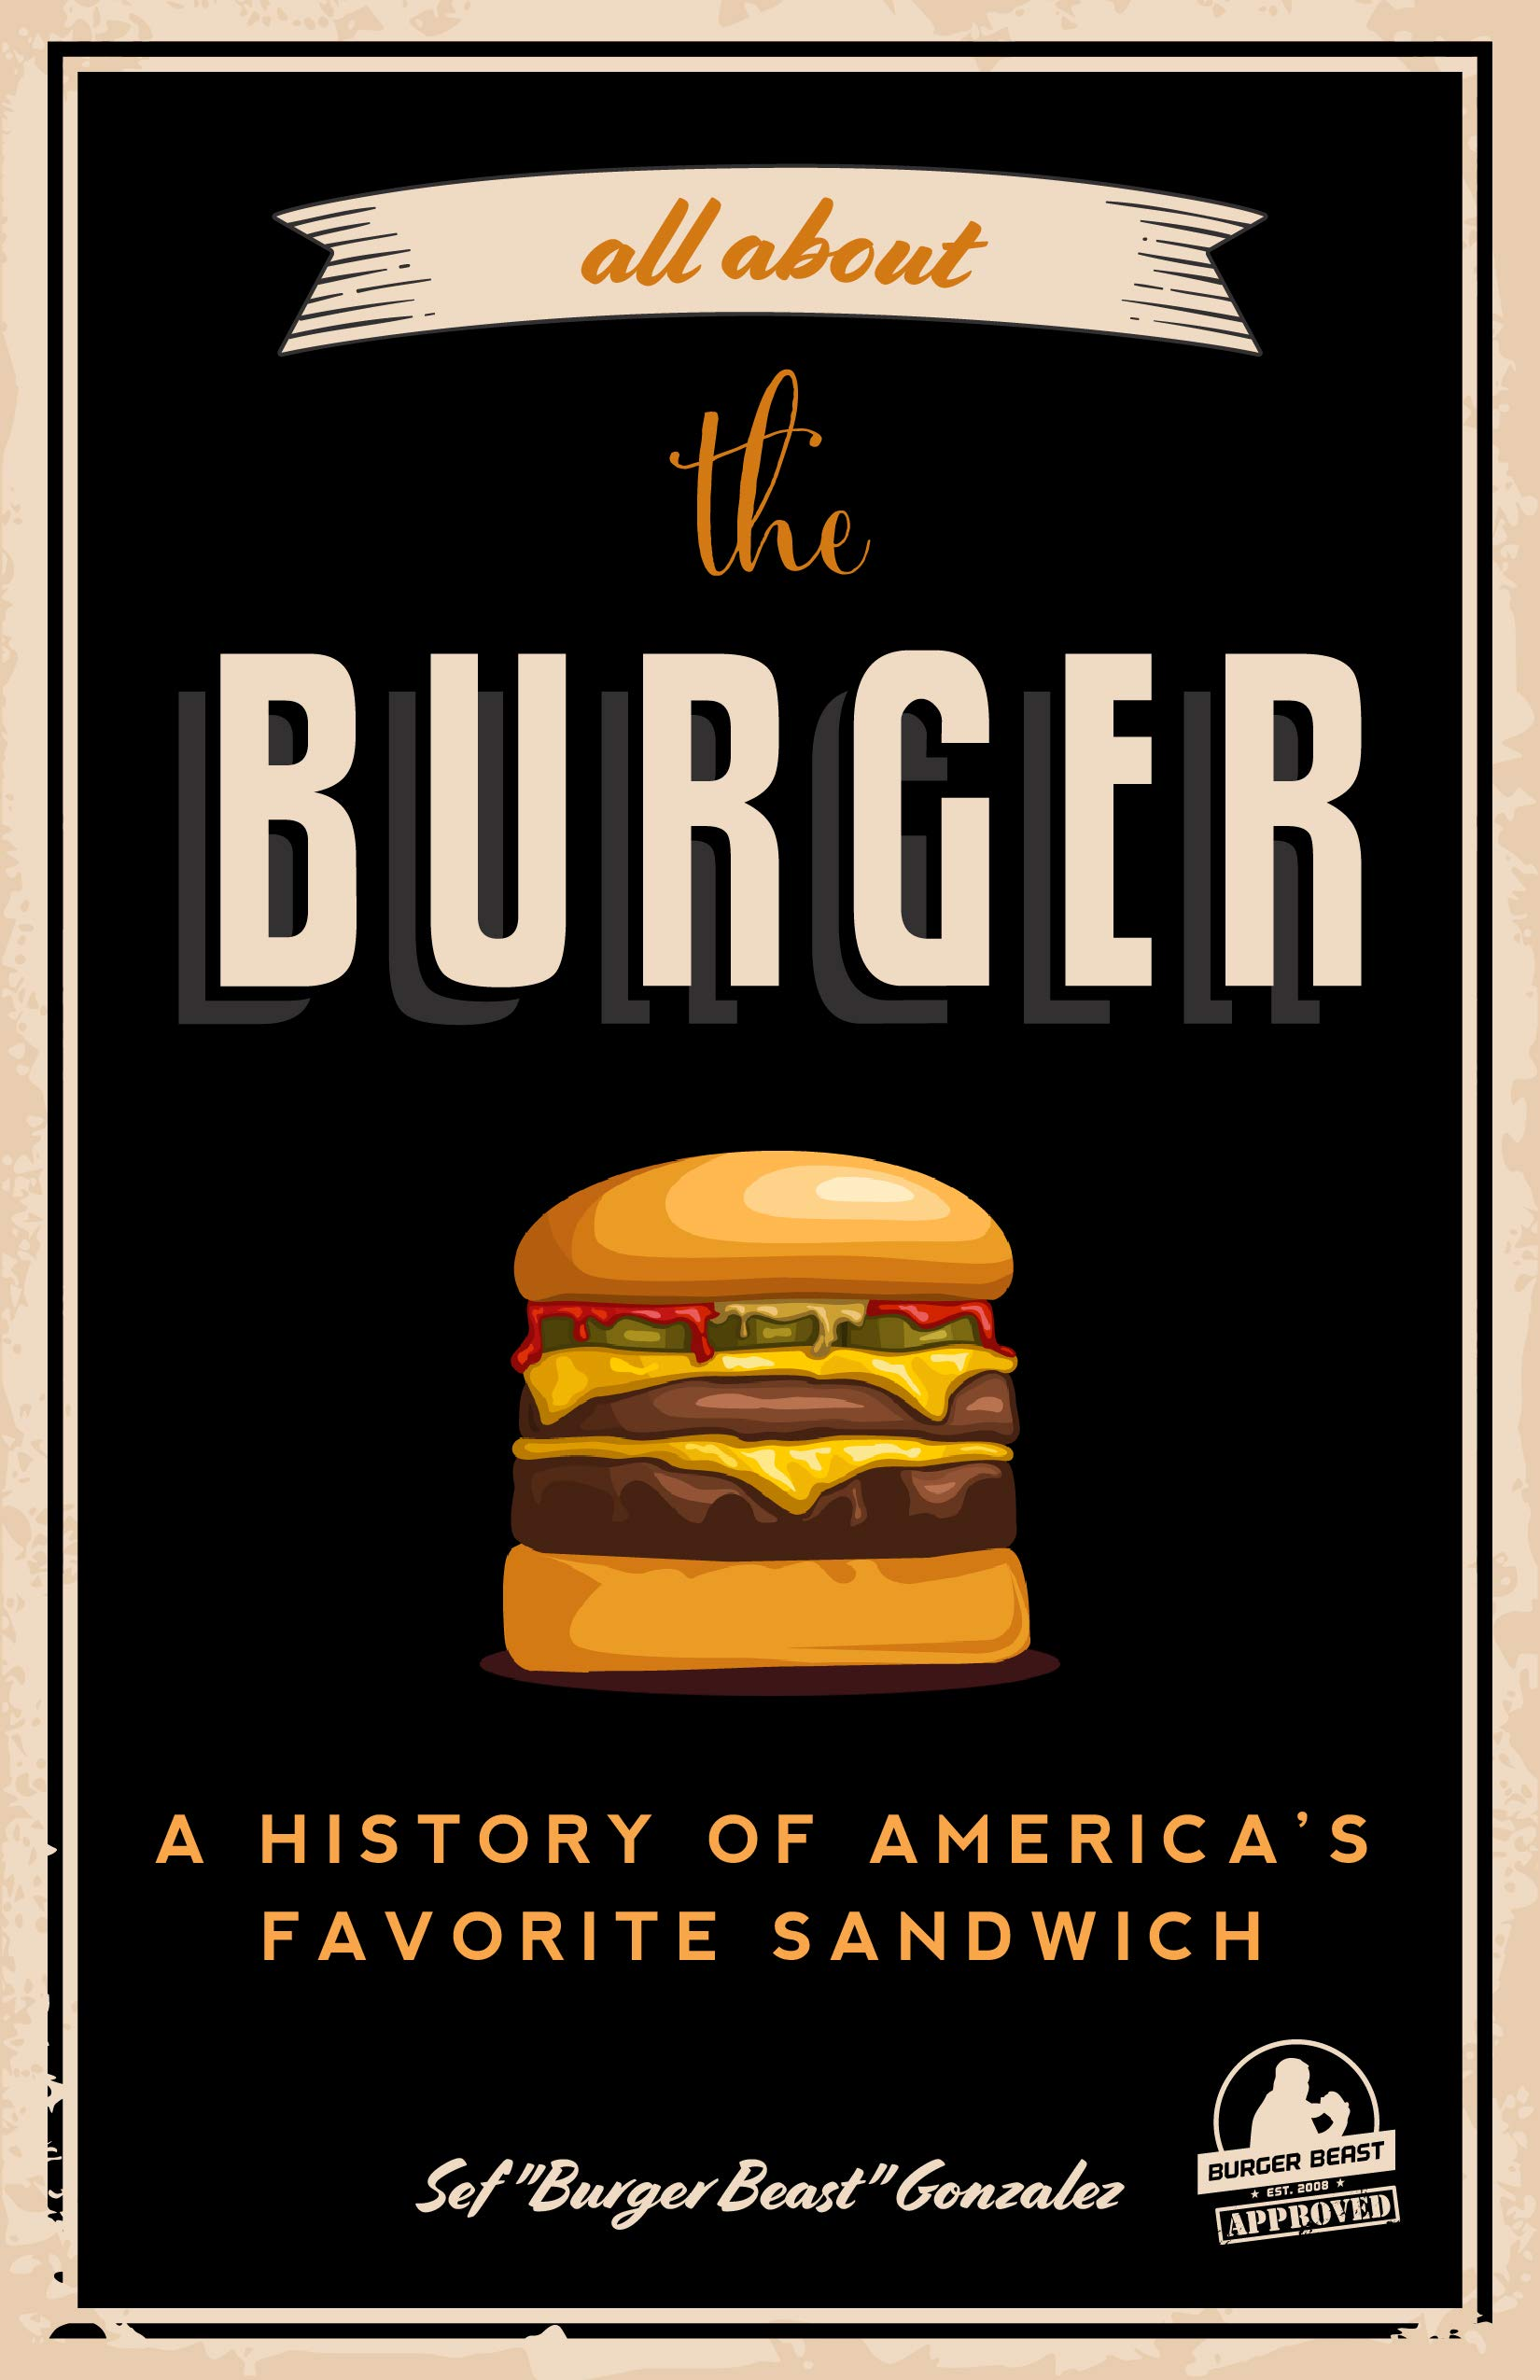 Image OfAll About The Burger: A History Of America's Favorite Sandwich